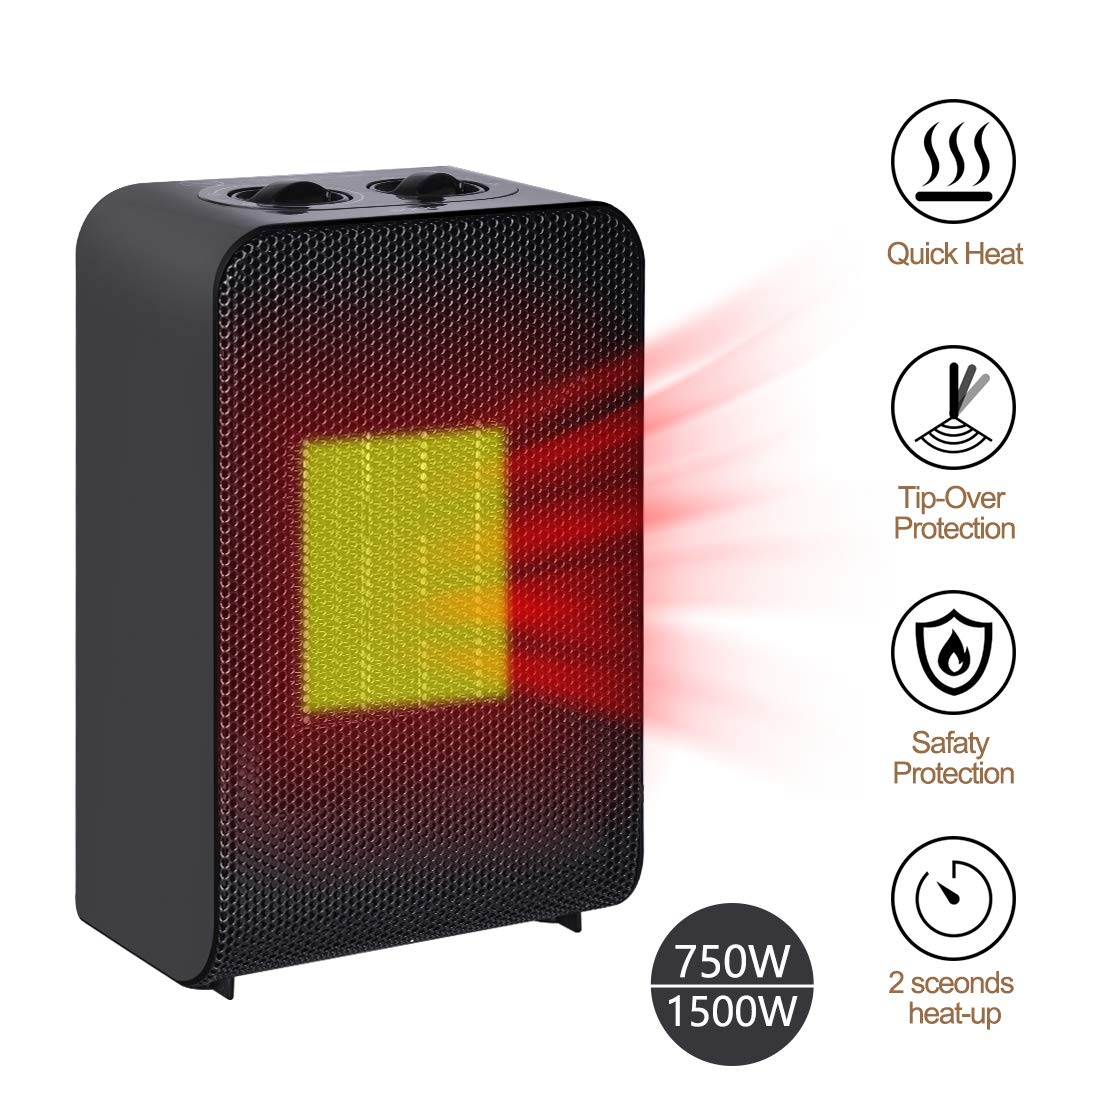 Iseebiz Space Heater Electric Space Heater with Adjustable Thermostat Ceramic Small Heater, Tip-Over and Overheat Protection, for Home and Office.